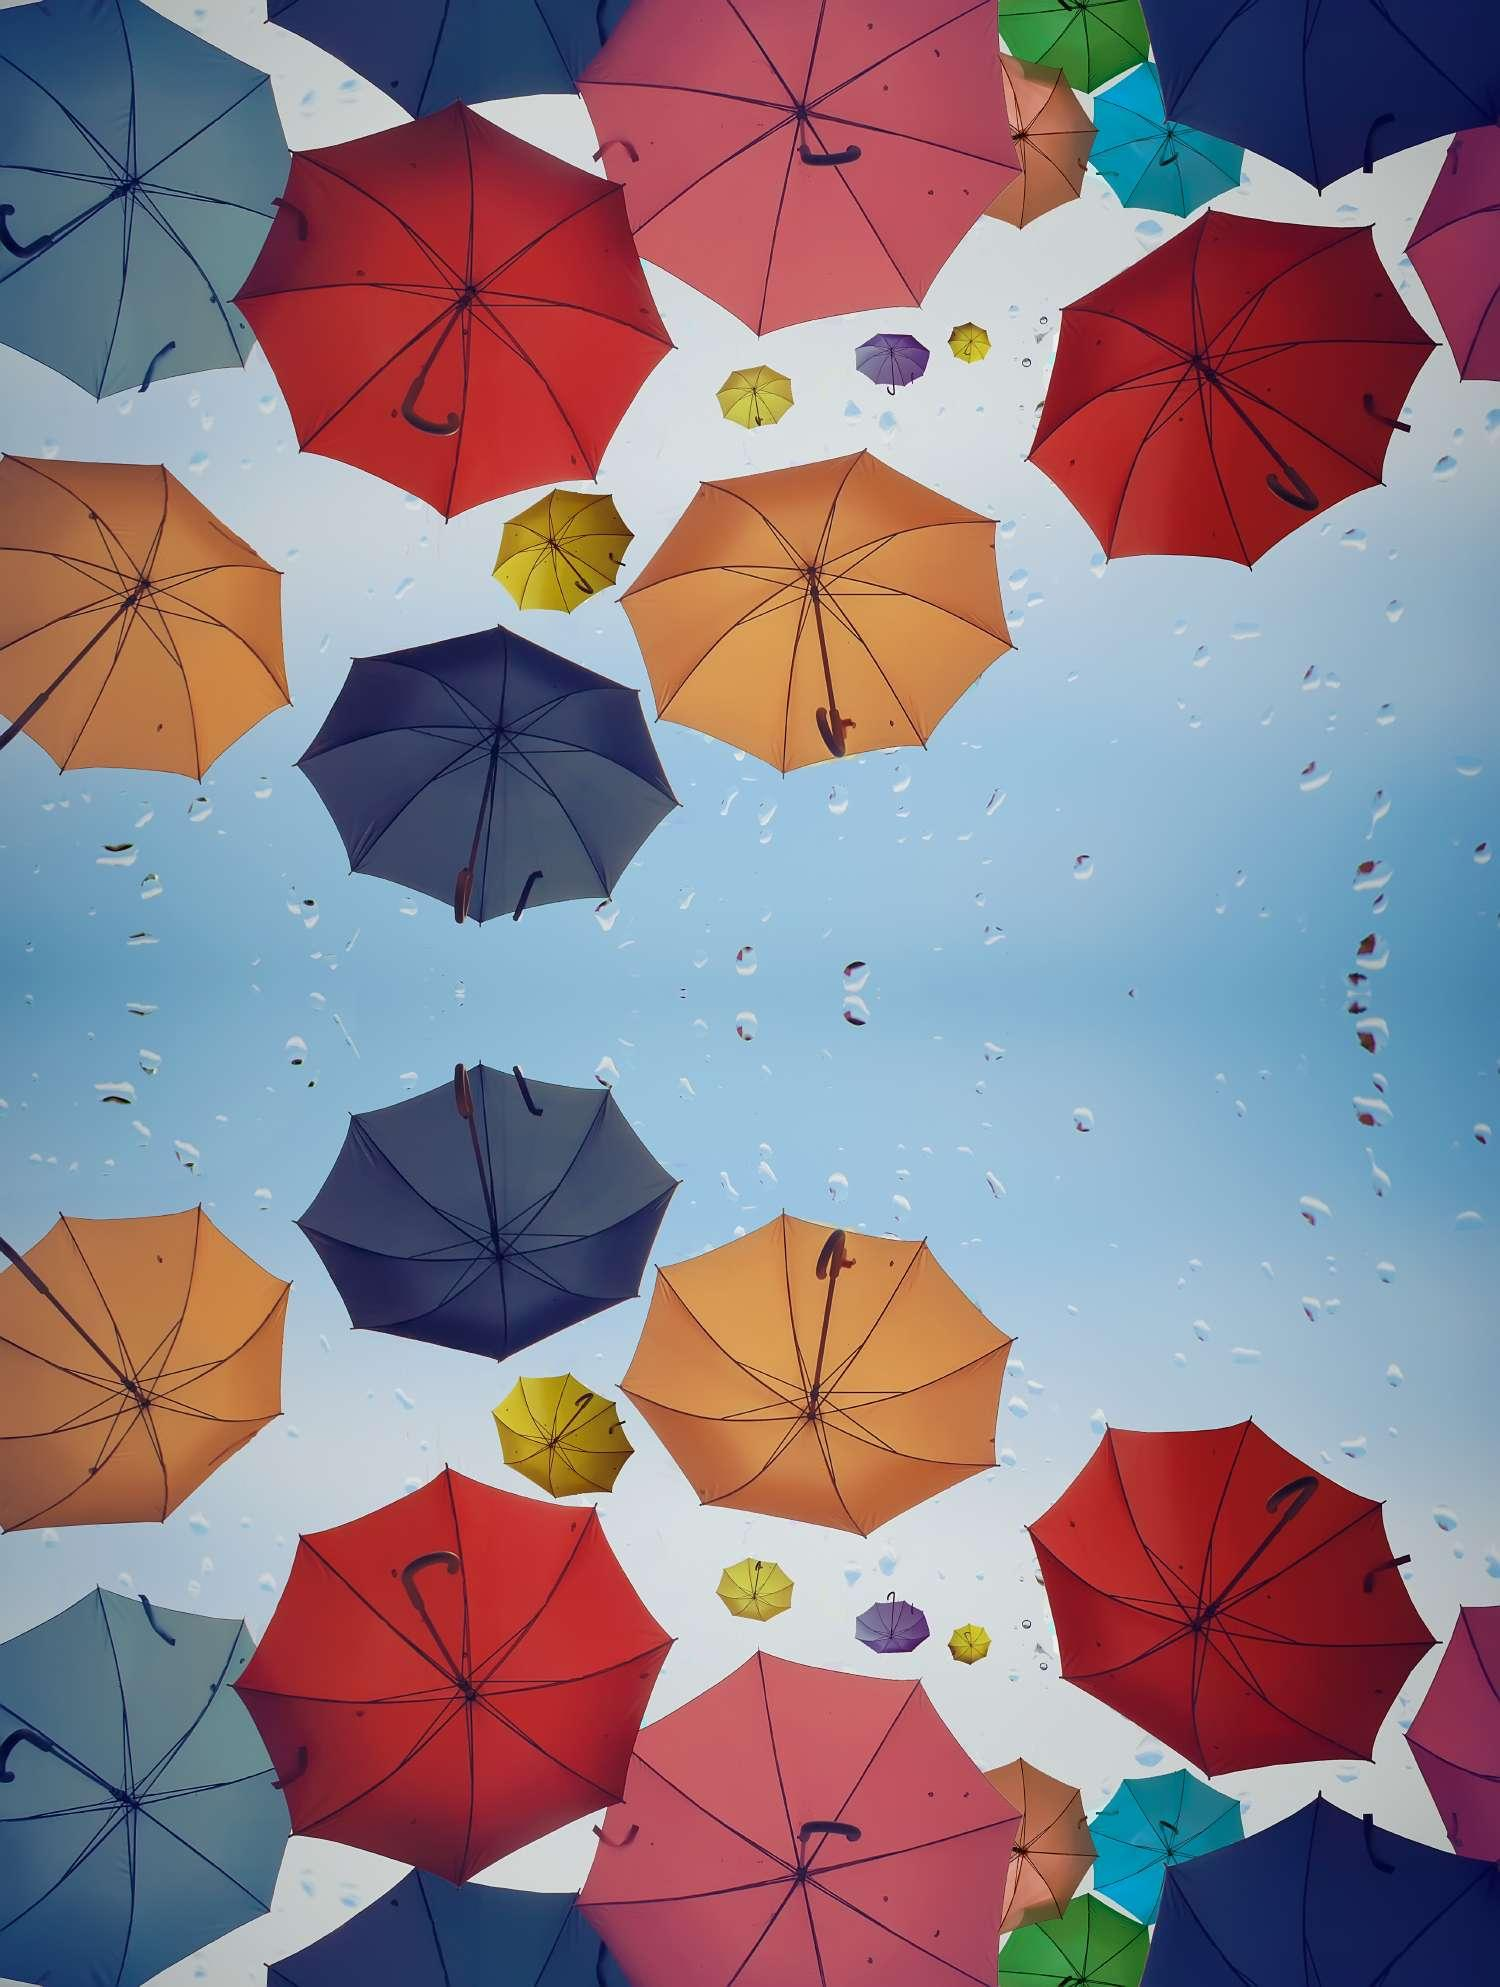 Colorful umbrellas floating in the air on a rainy day